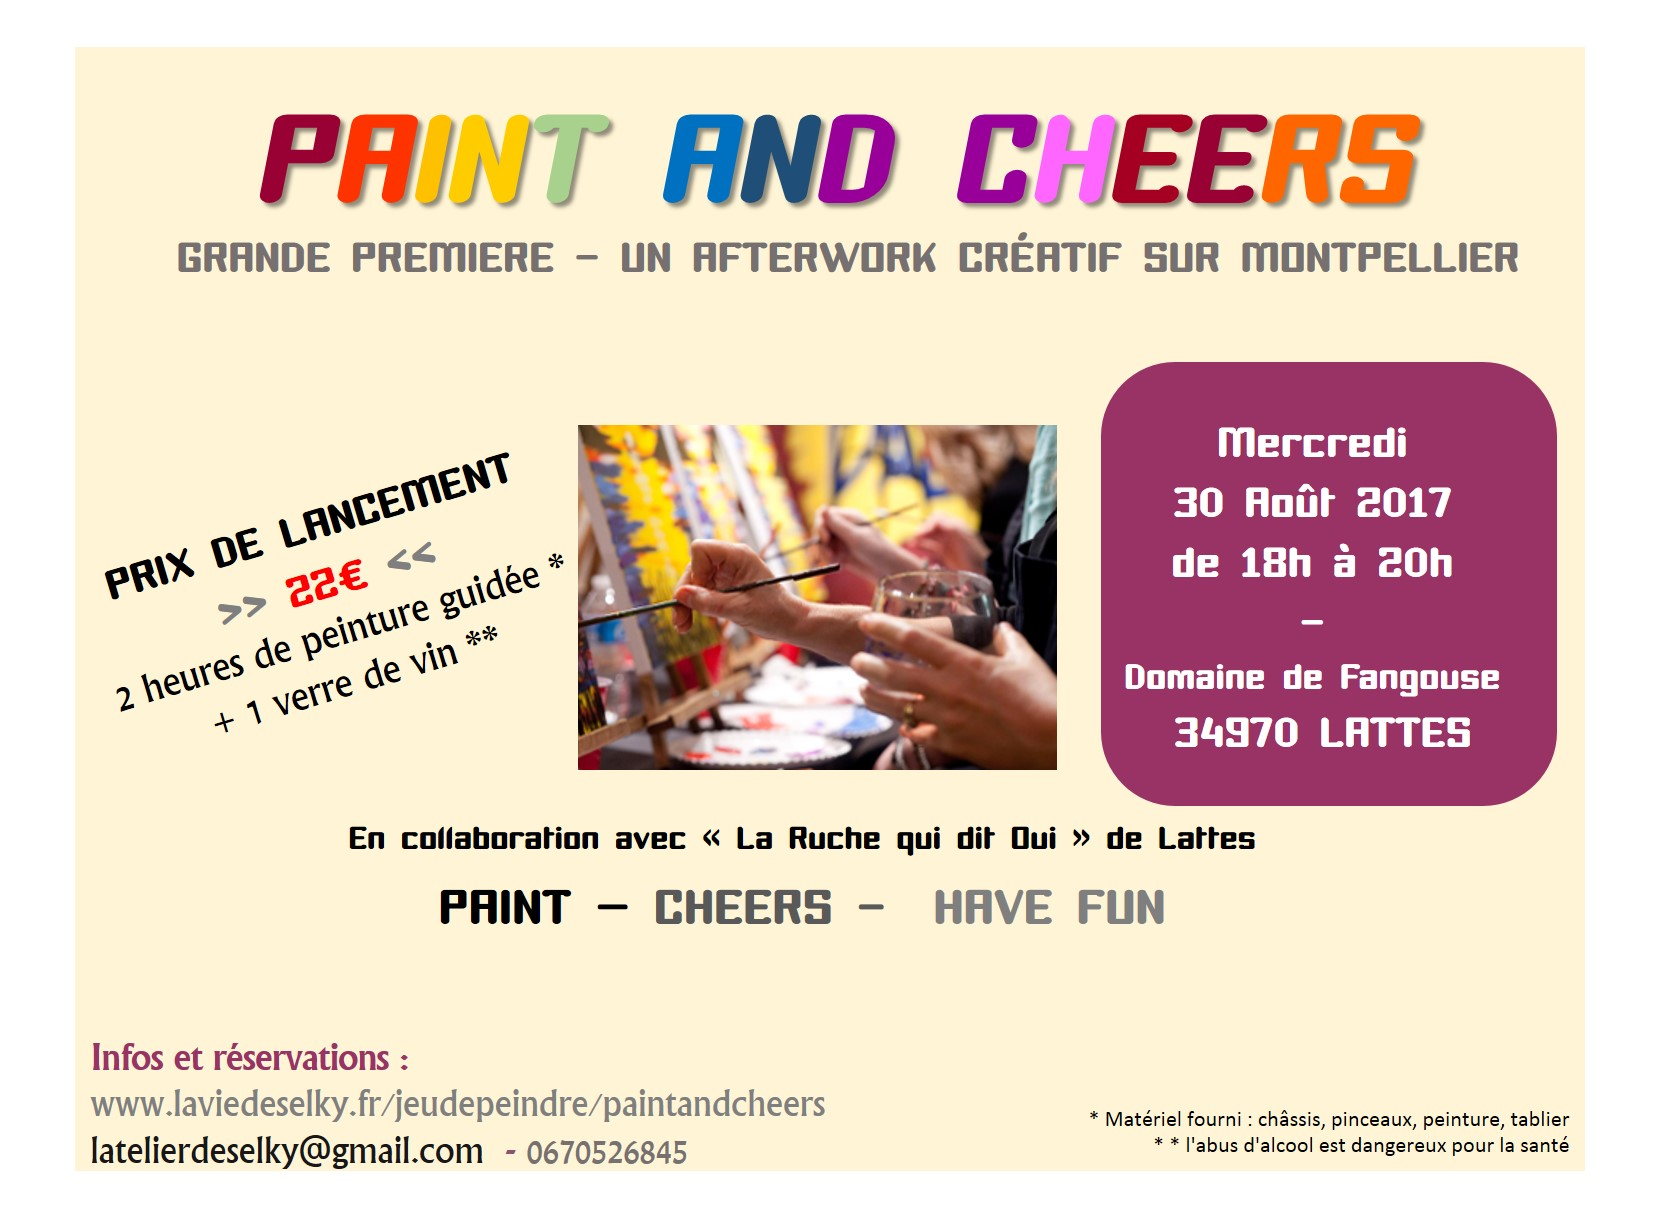 1ere soirée paint and cheers